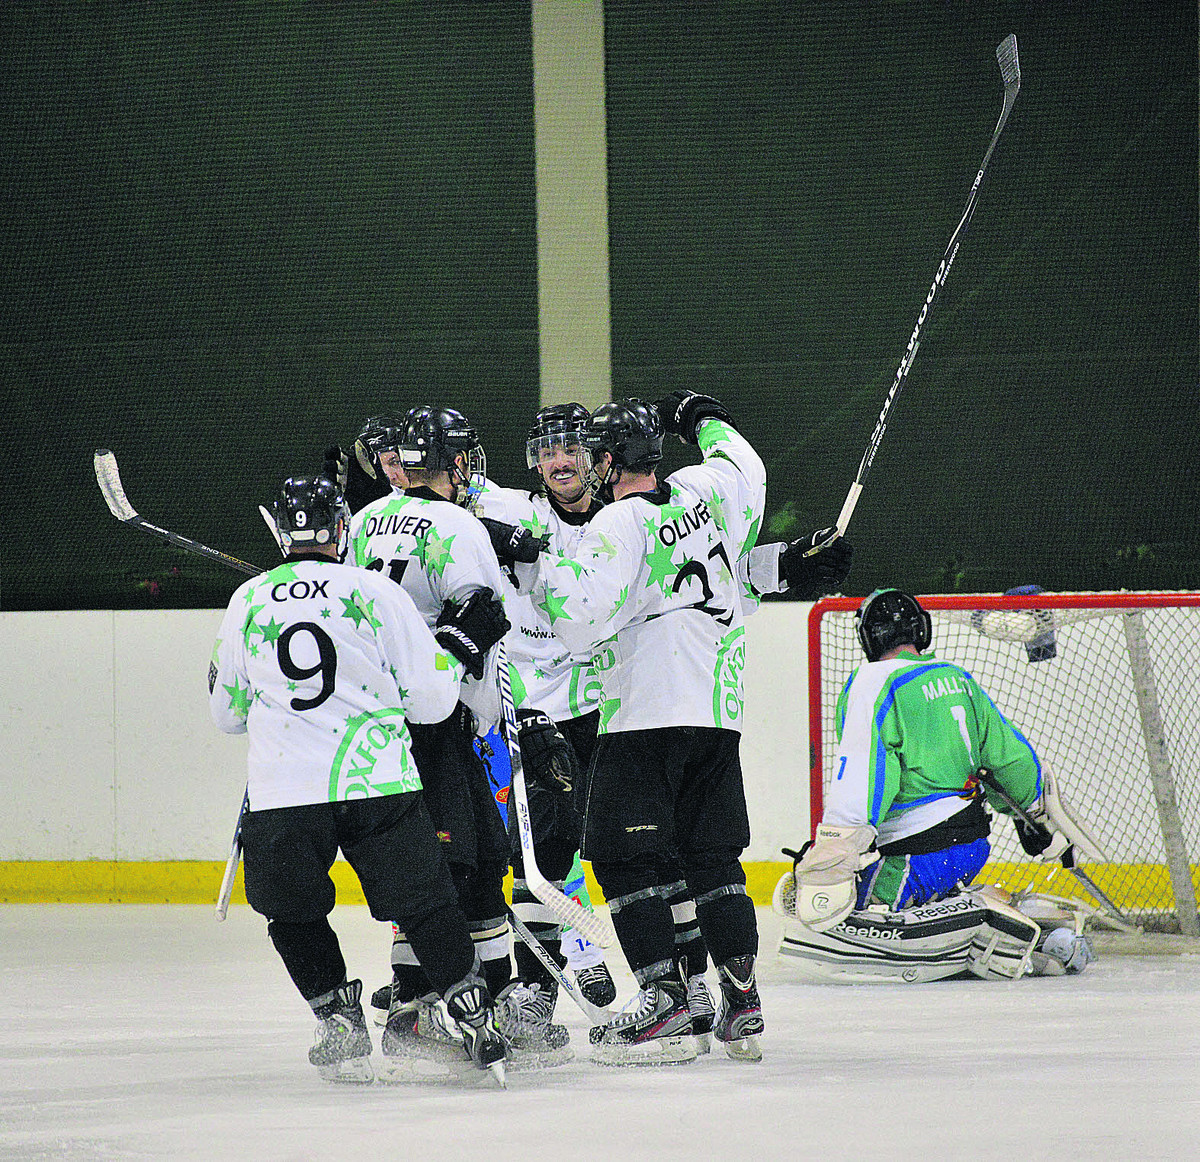 The Stars players come together to celebrate a goal in their 10-1 win over Lee Valley Lions